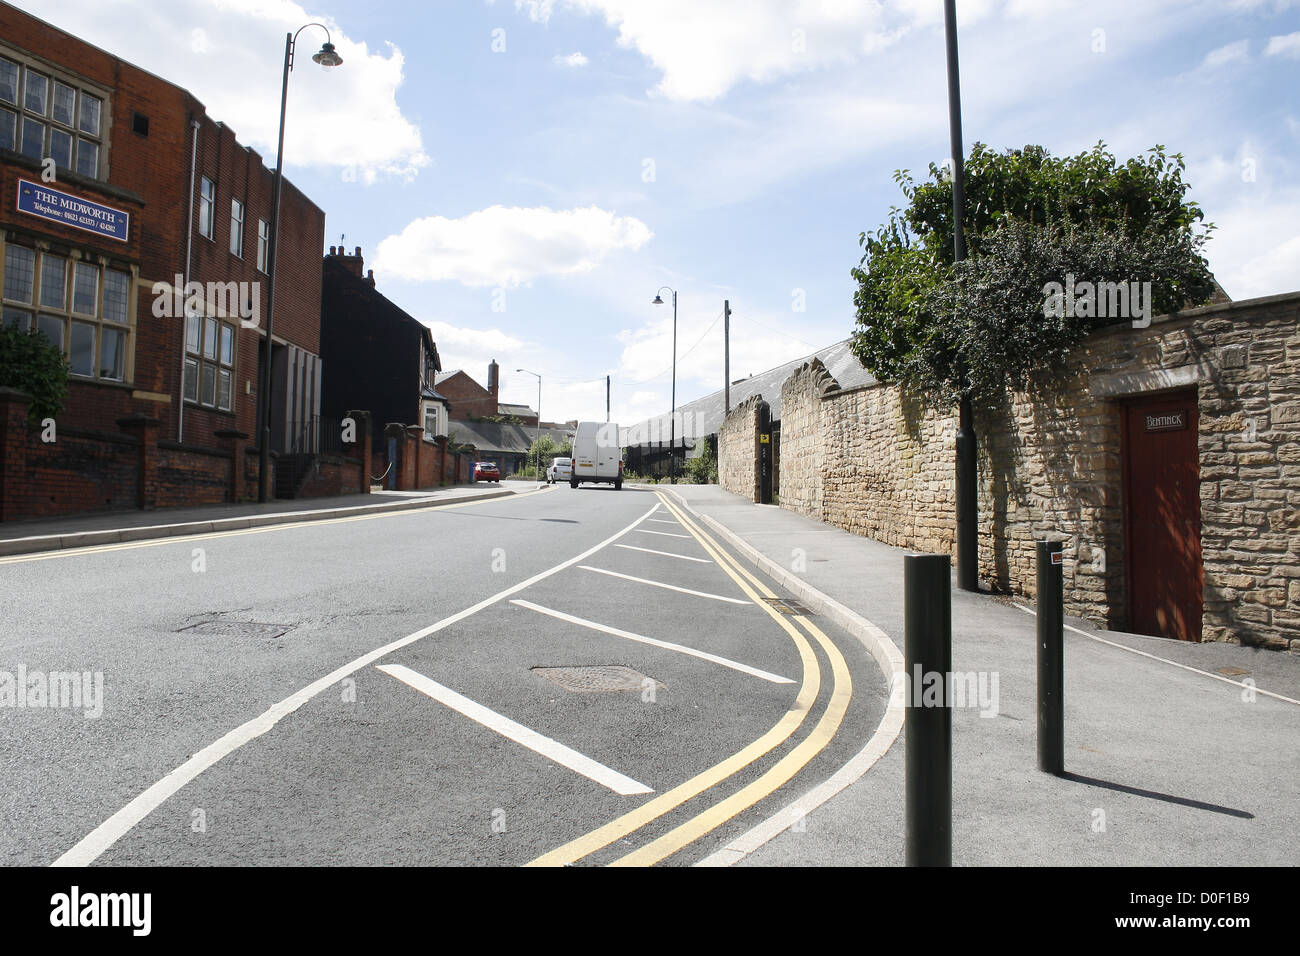 Church Lane, Mansfield, Nottinghamshire, England, UK - Stock Image